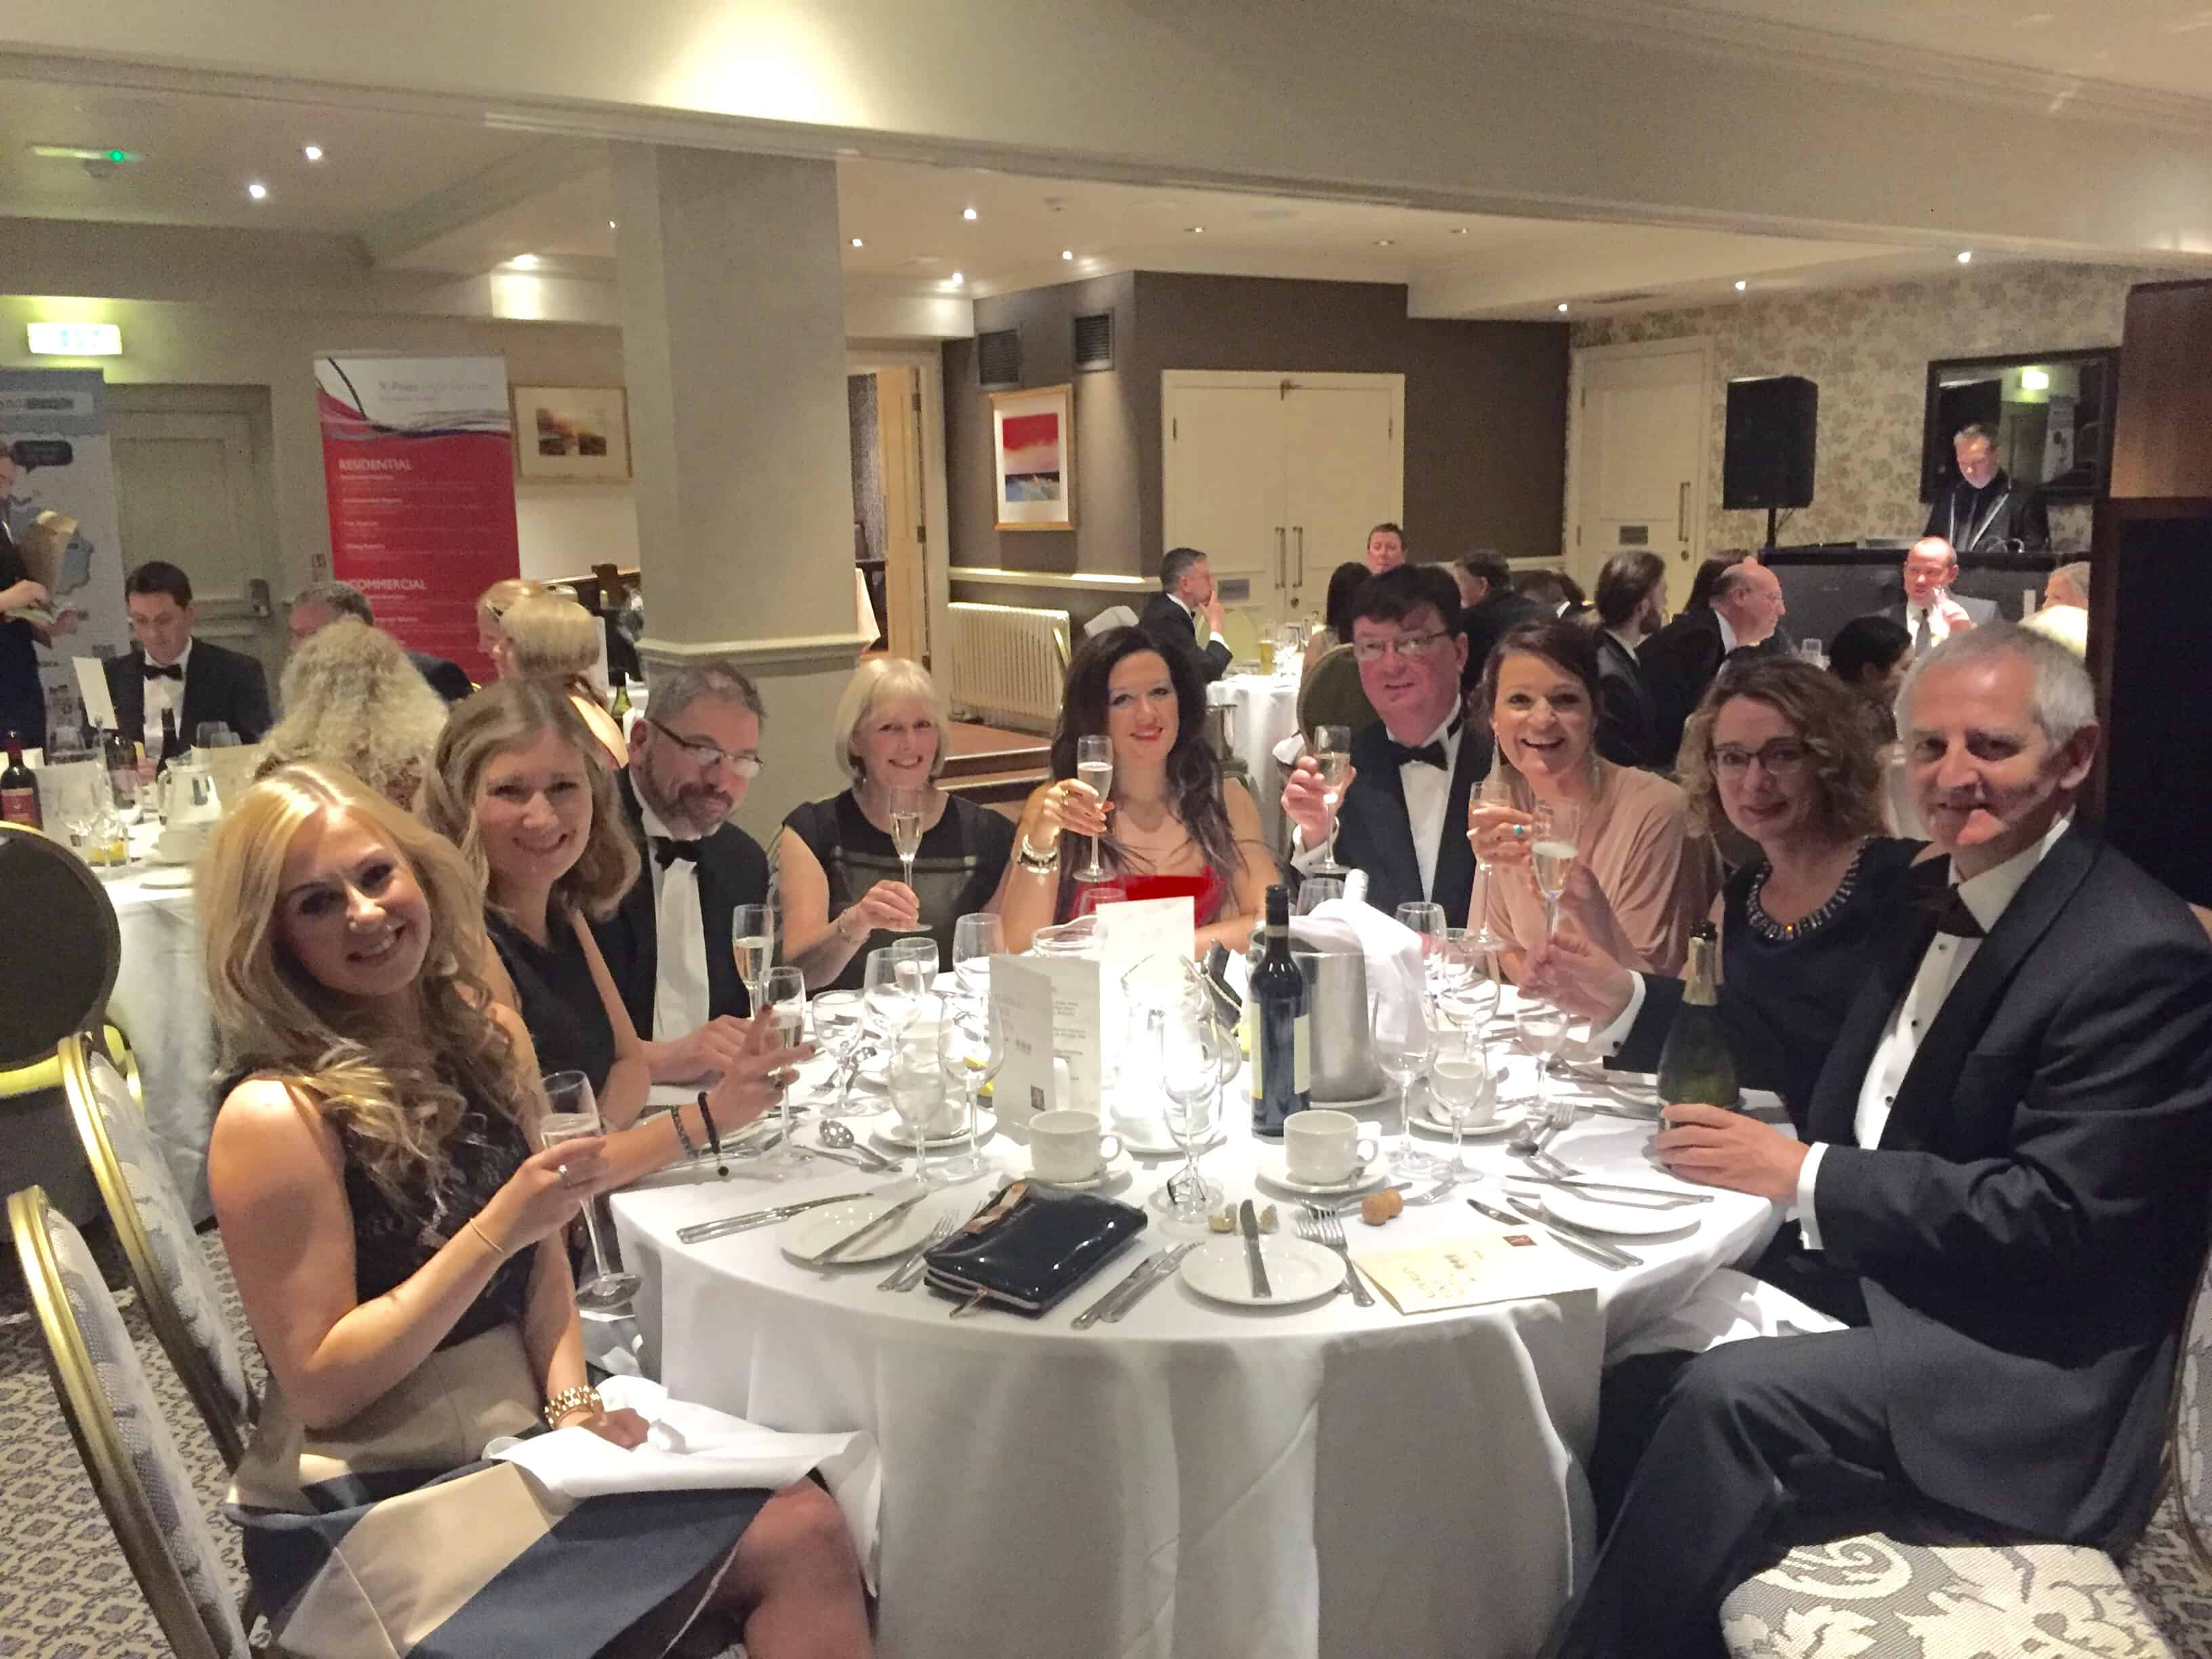 Macclesfield Law Society Annual Dinner